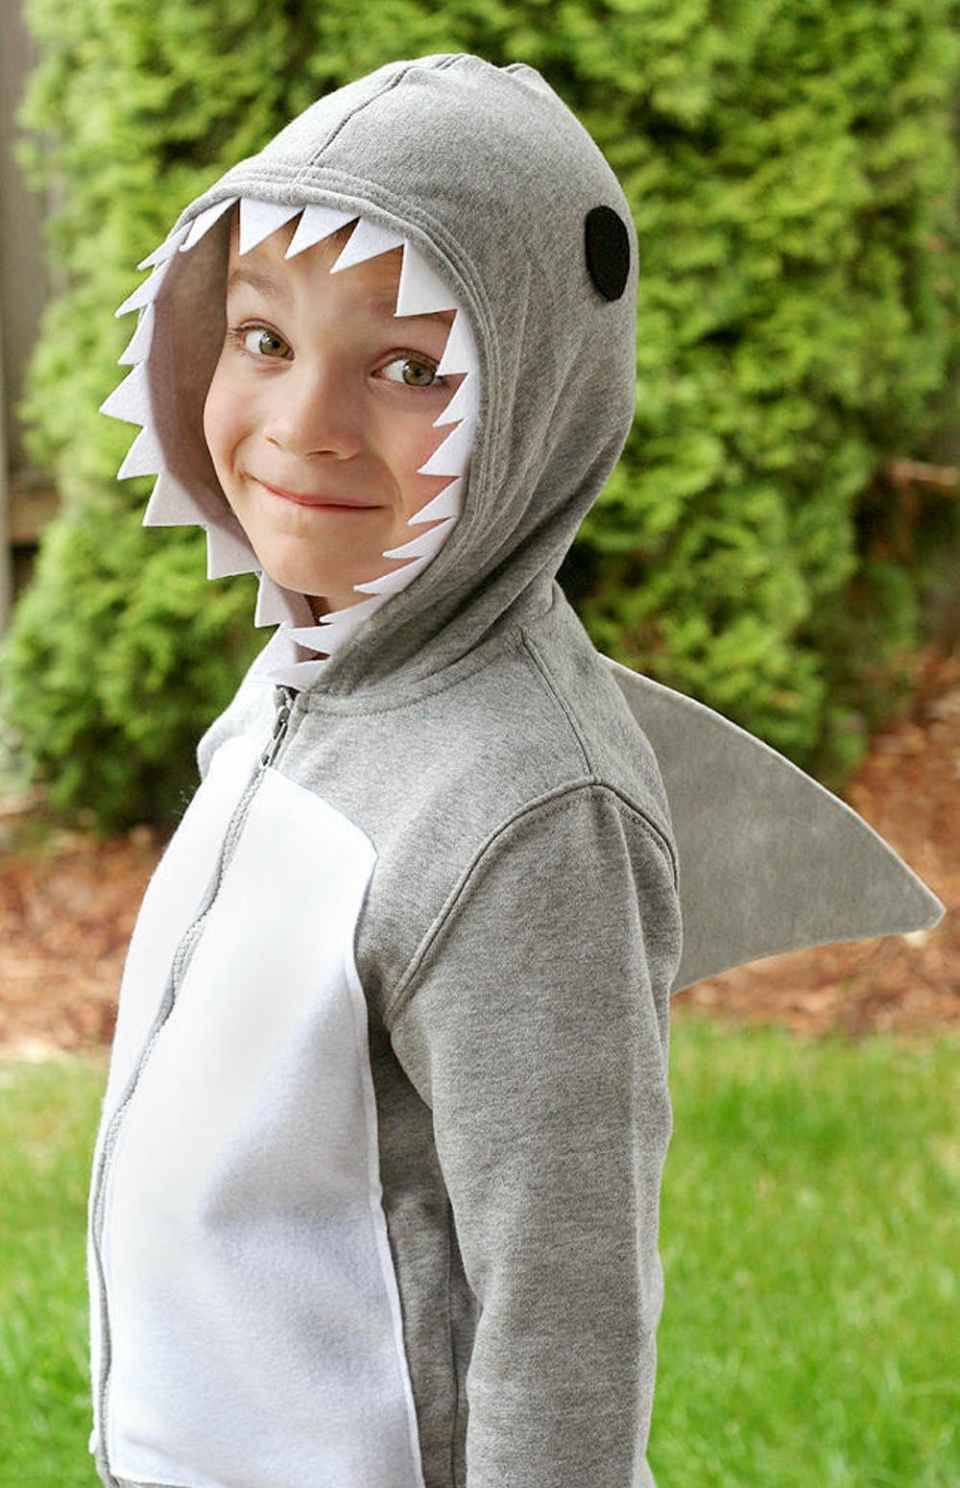 Shark Costume | Animal Halloween Costumes for Kids, Adults - FarmFoodFamily.com